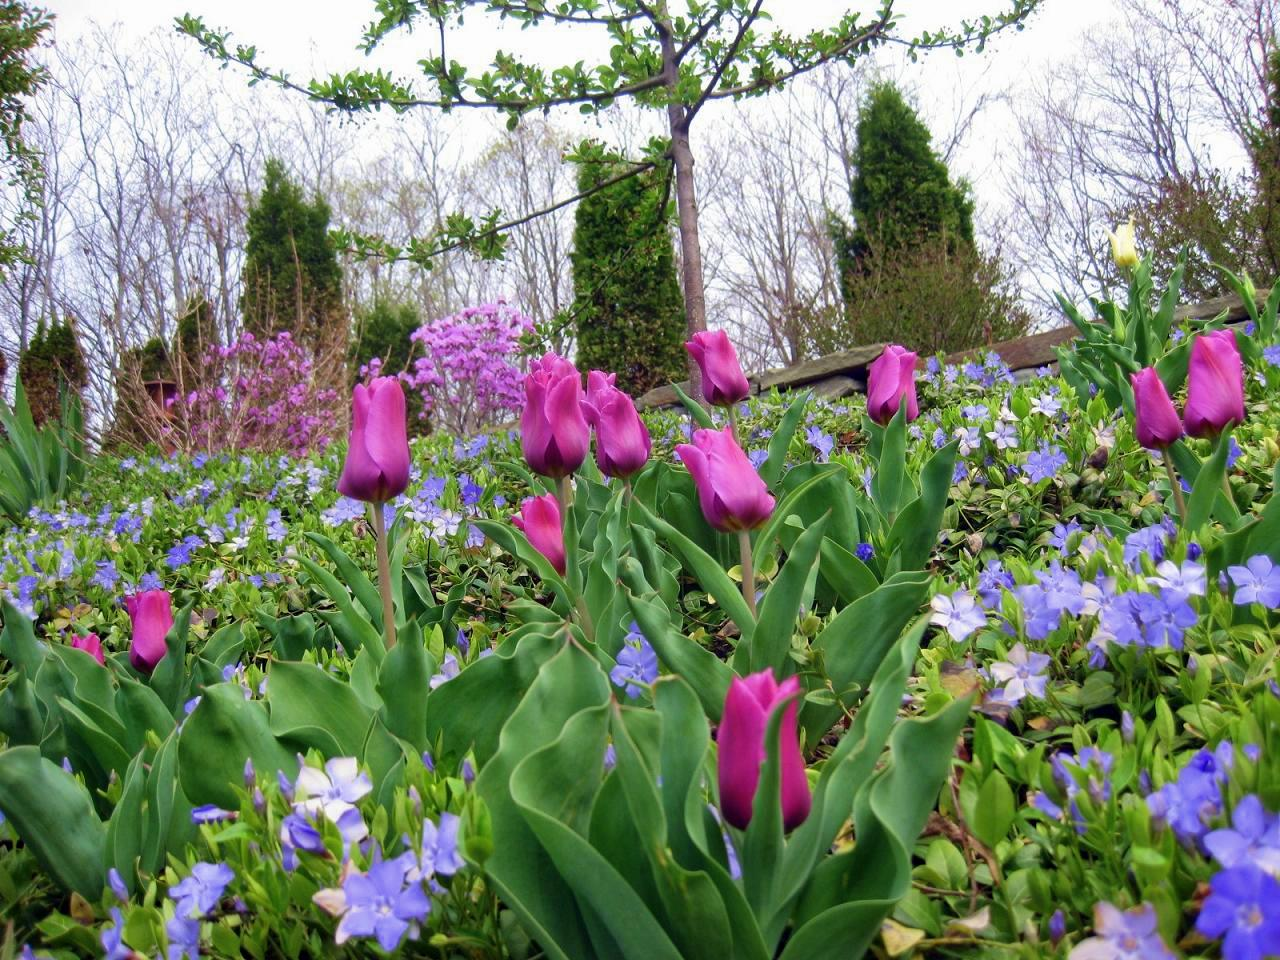 Bulbs I'm Planting for Spring Color and Perfume